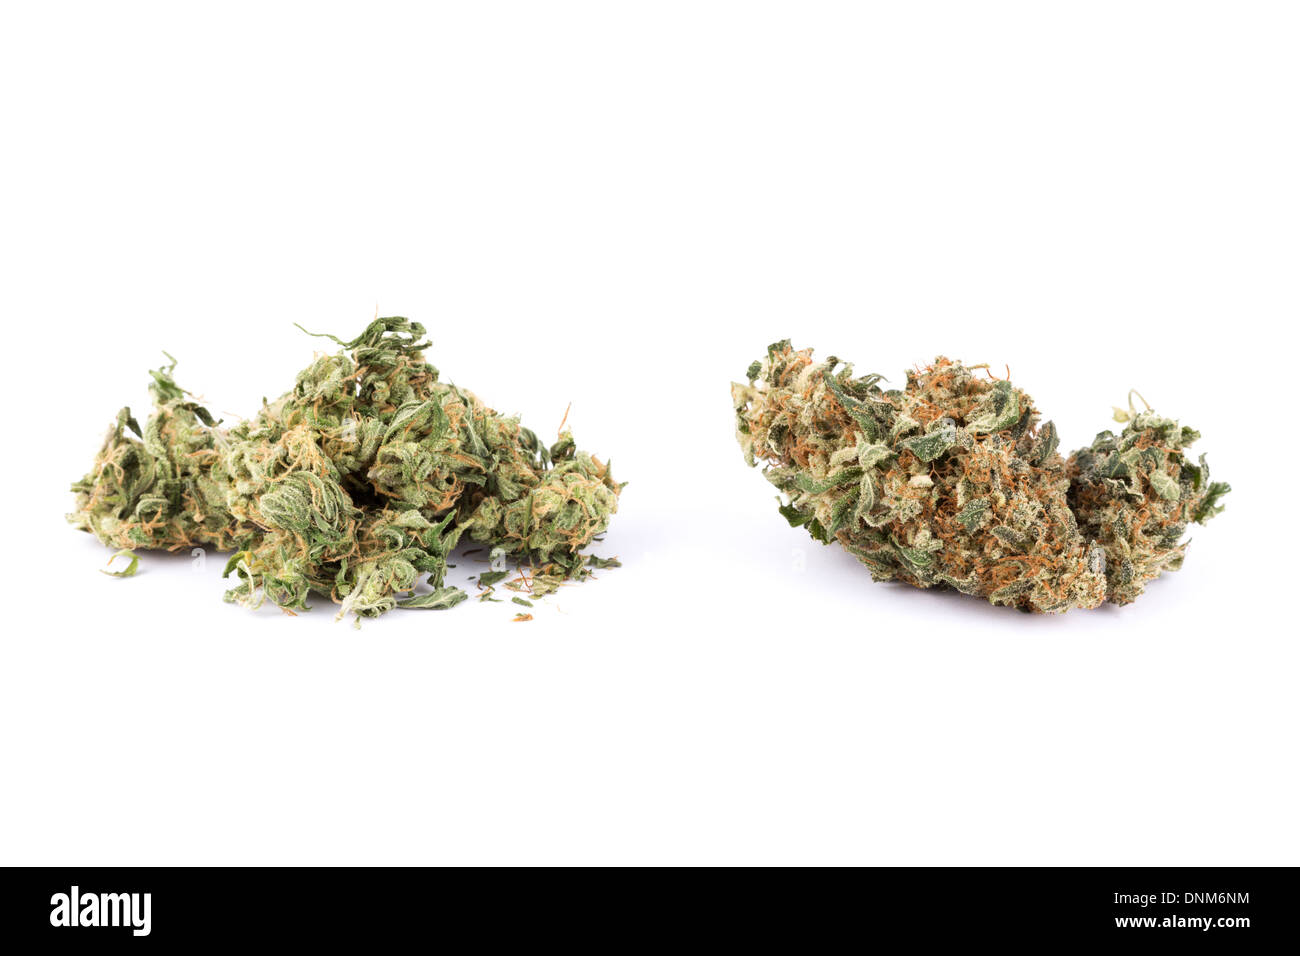 Two different types (or strains) of marijuana  High grade cannabis